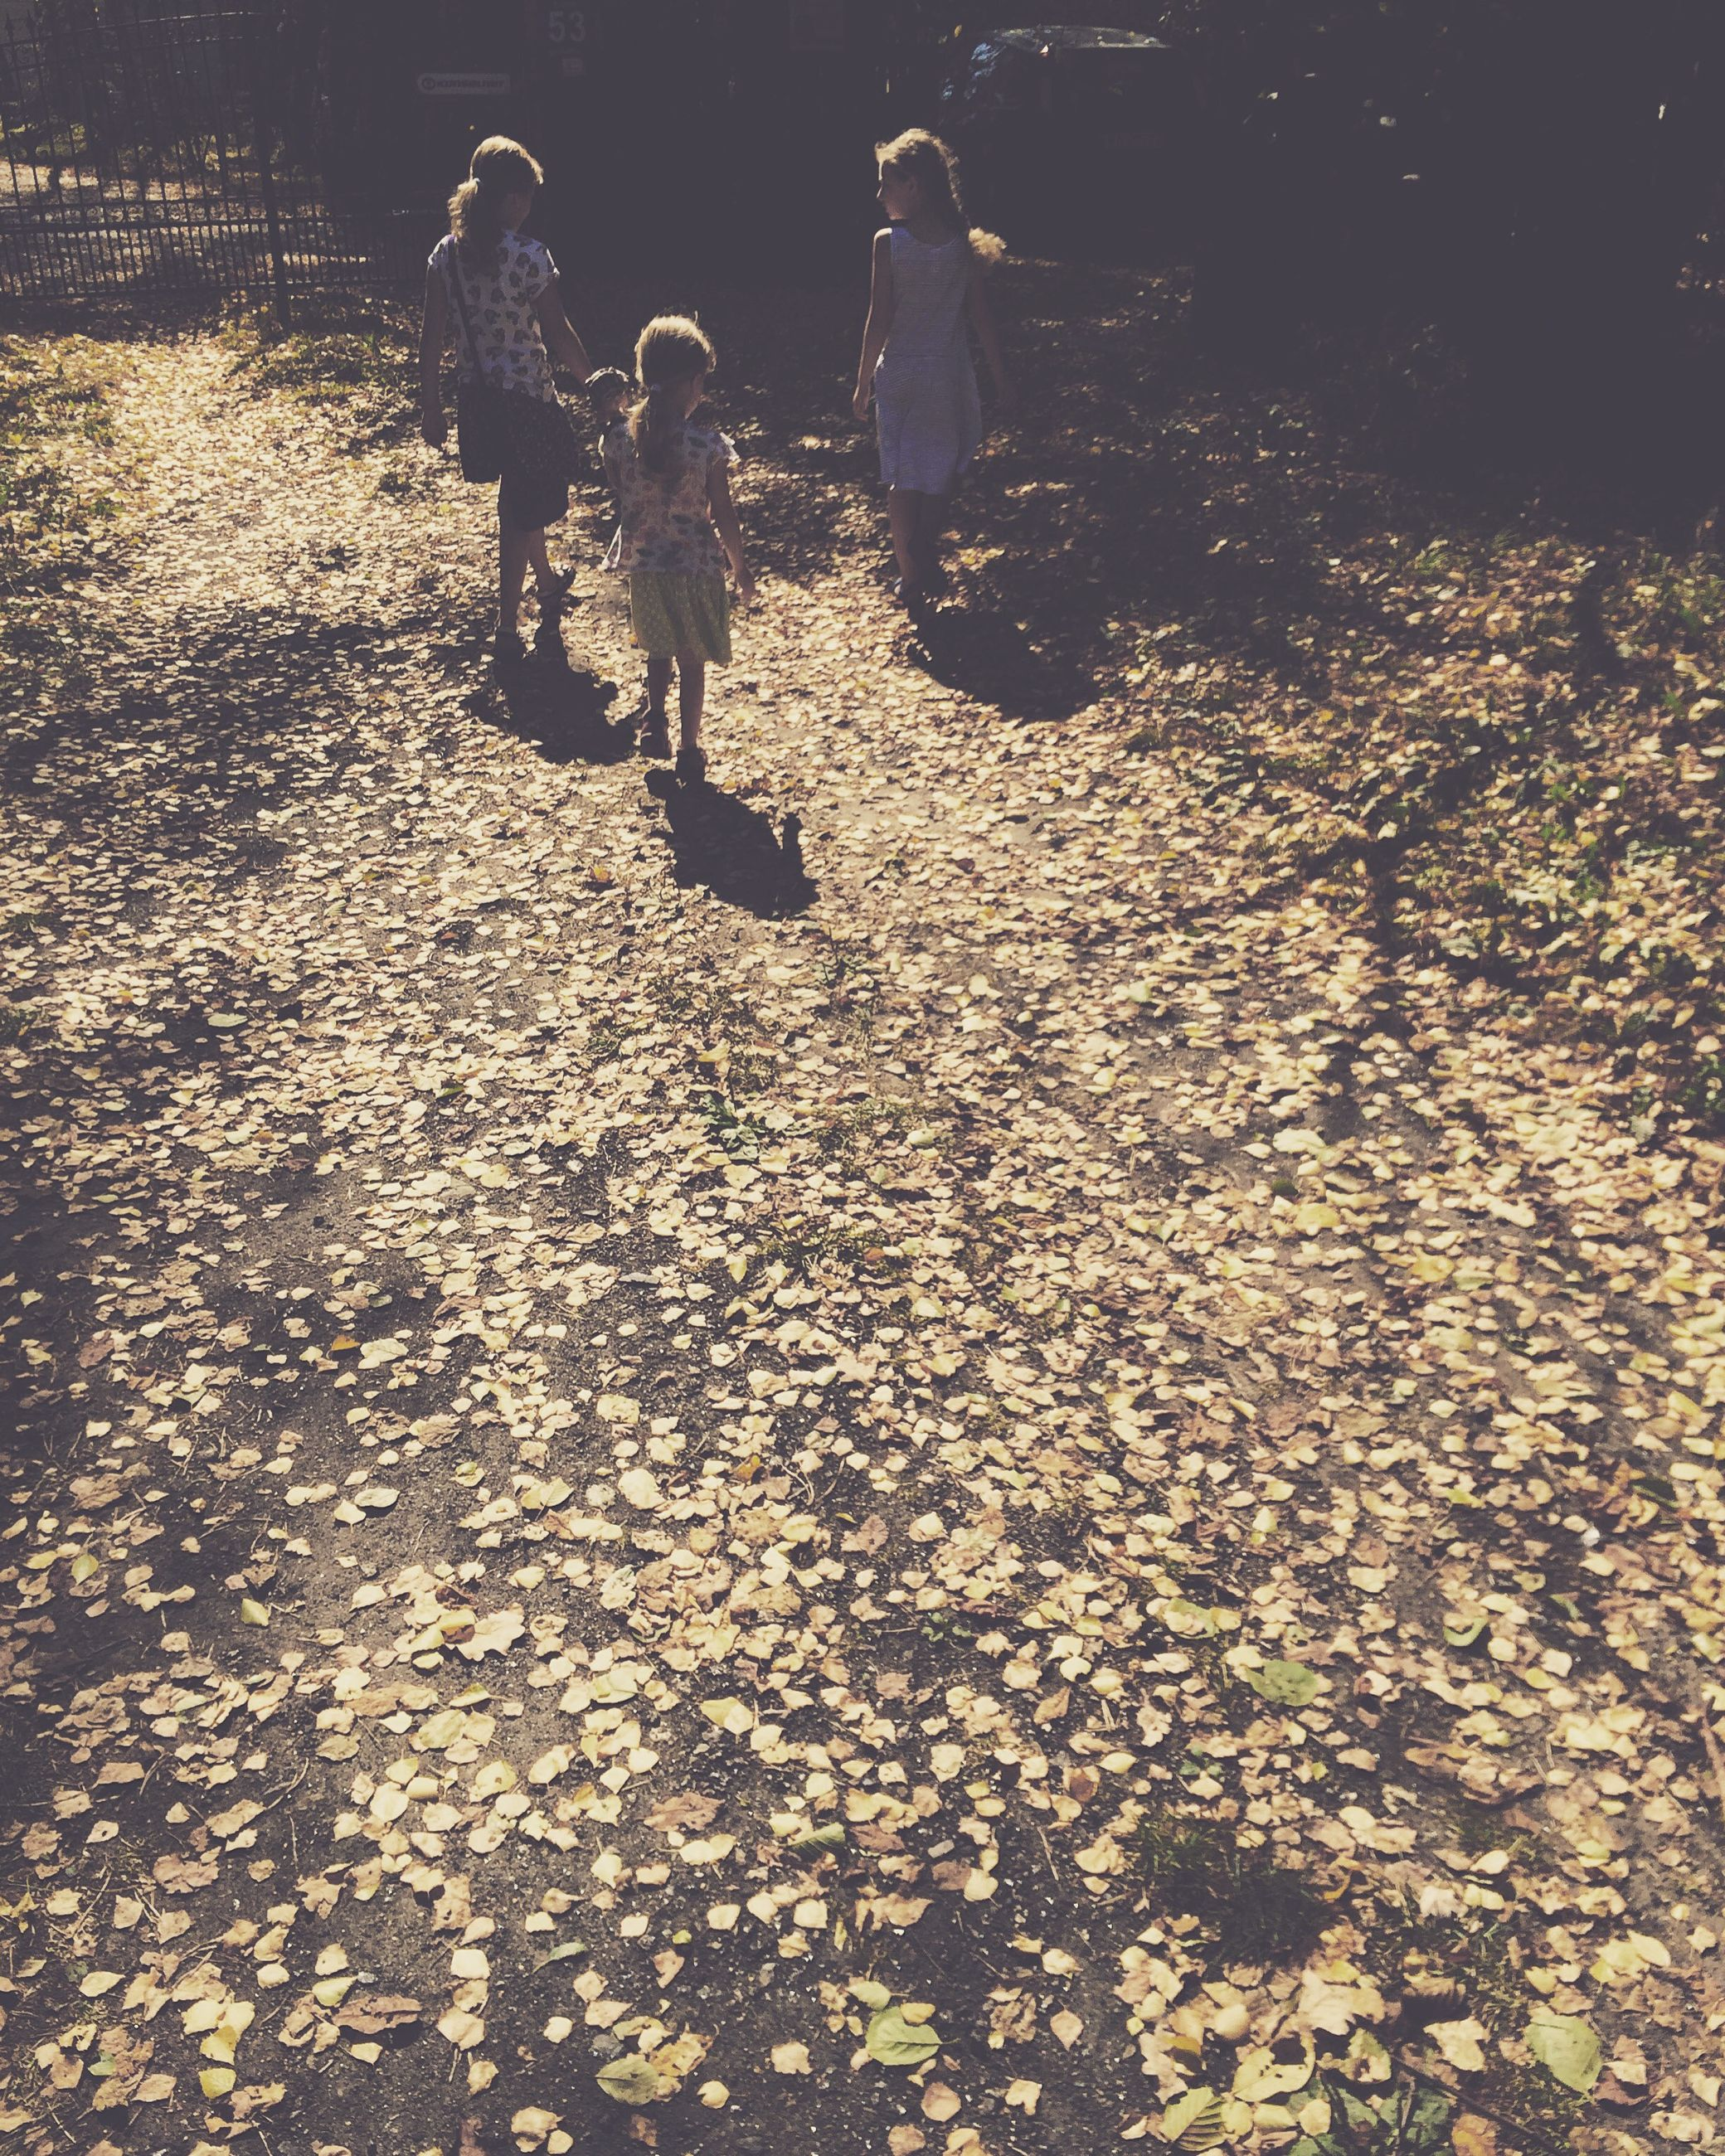 lifestyles, leisure activity, men, full length, childhood, high angle view, person, enjoyment, sunlight, girls, togetherness, casual clothing, walking, boys, outdoors, shadow, field